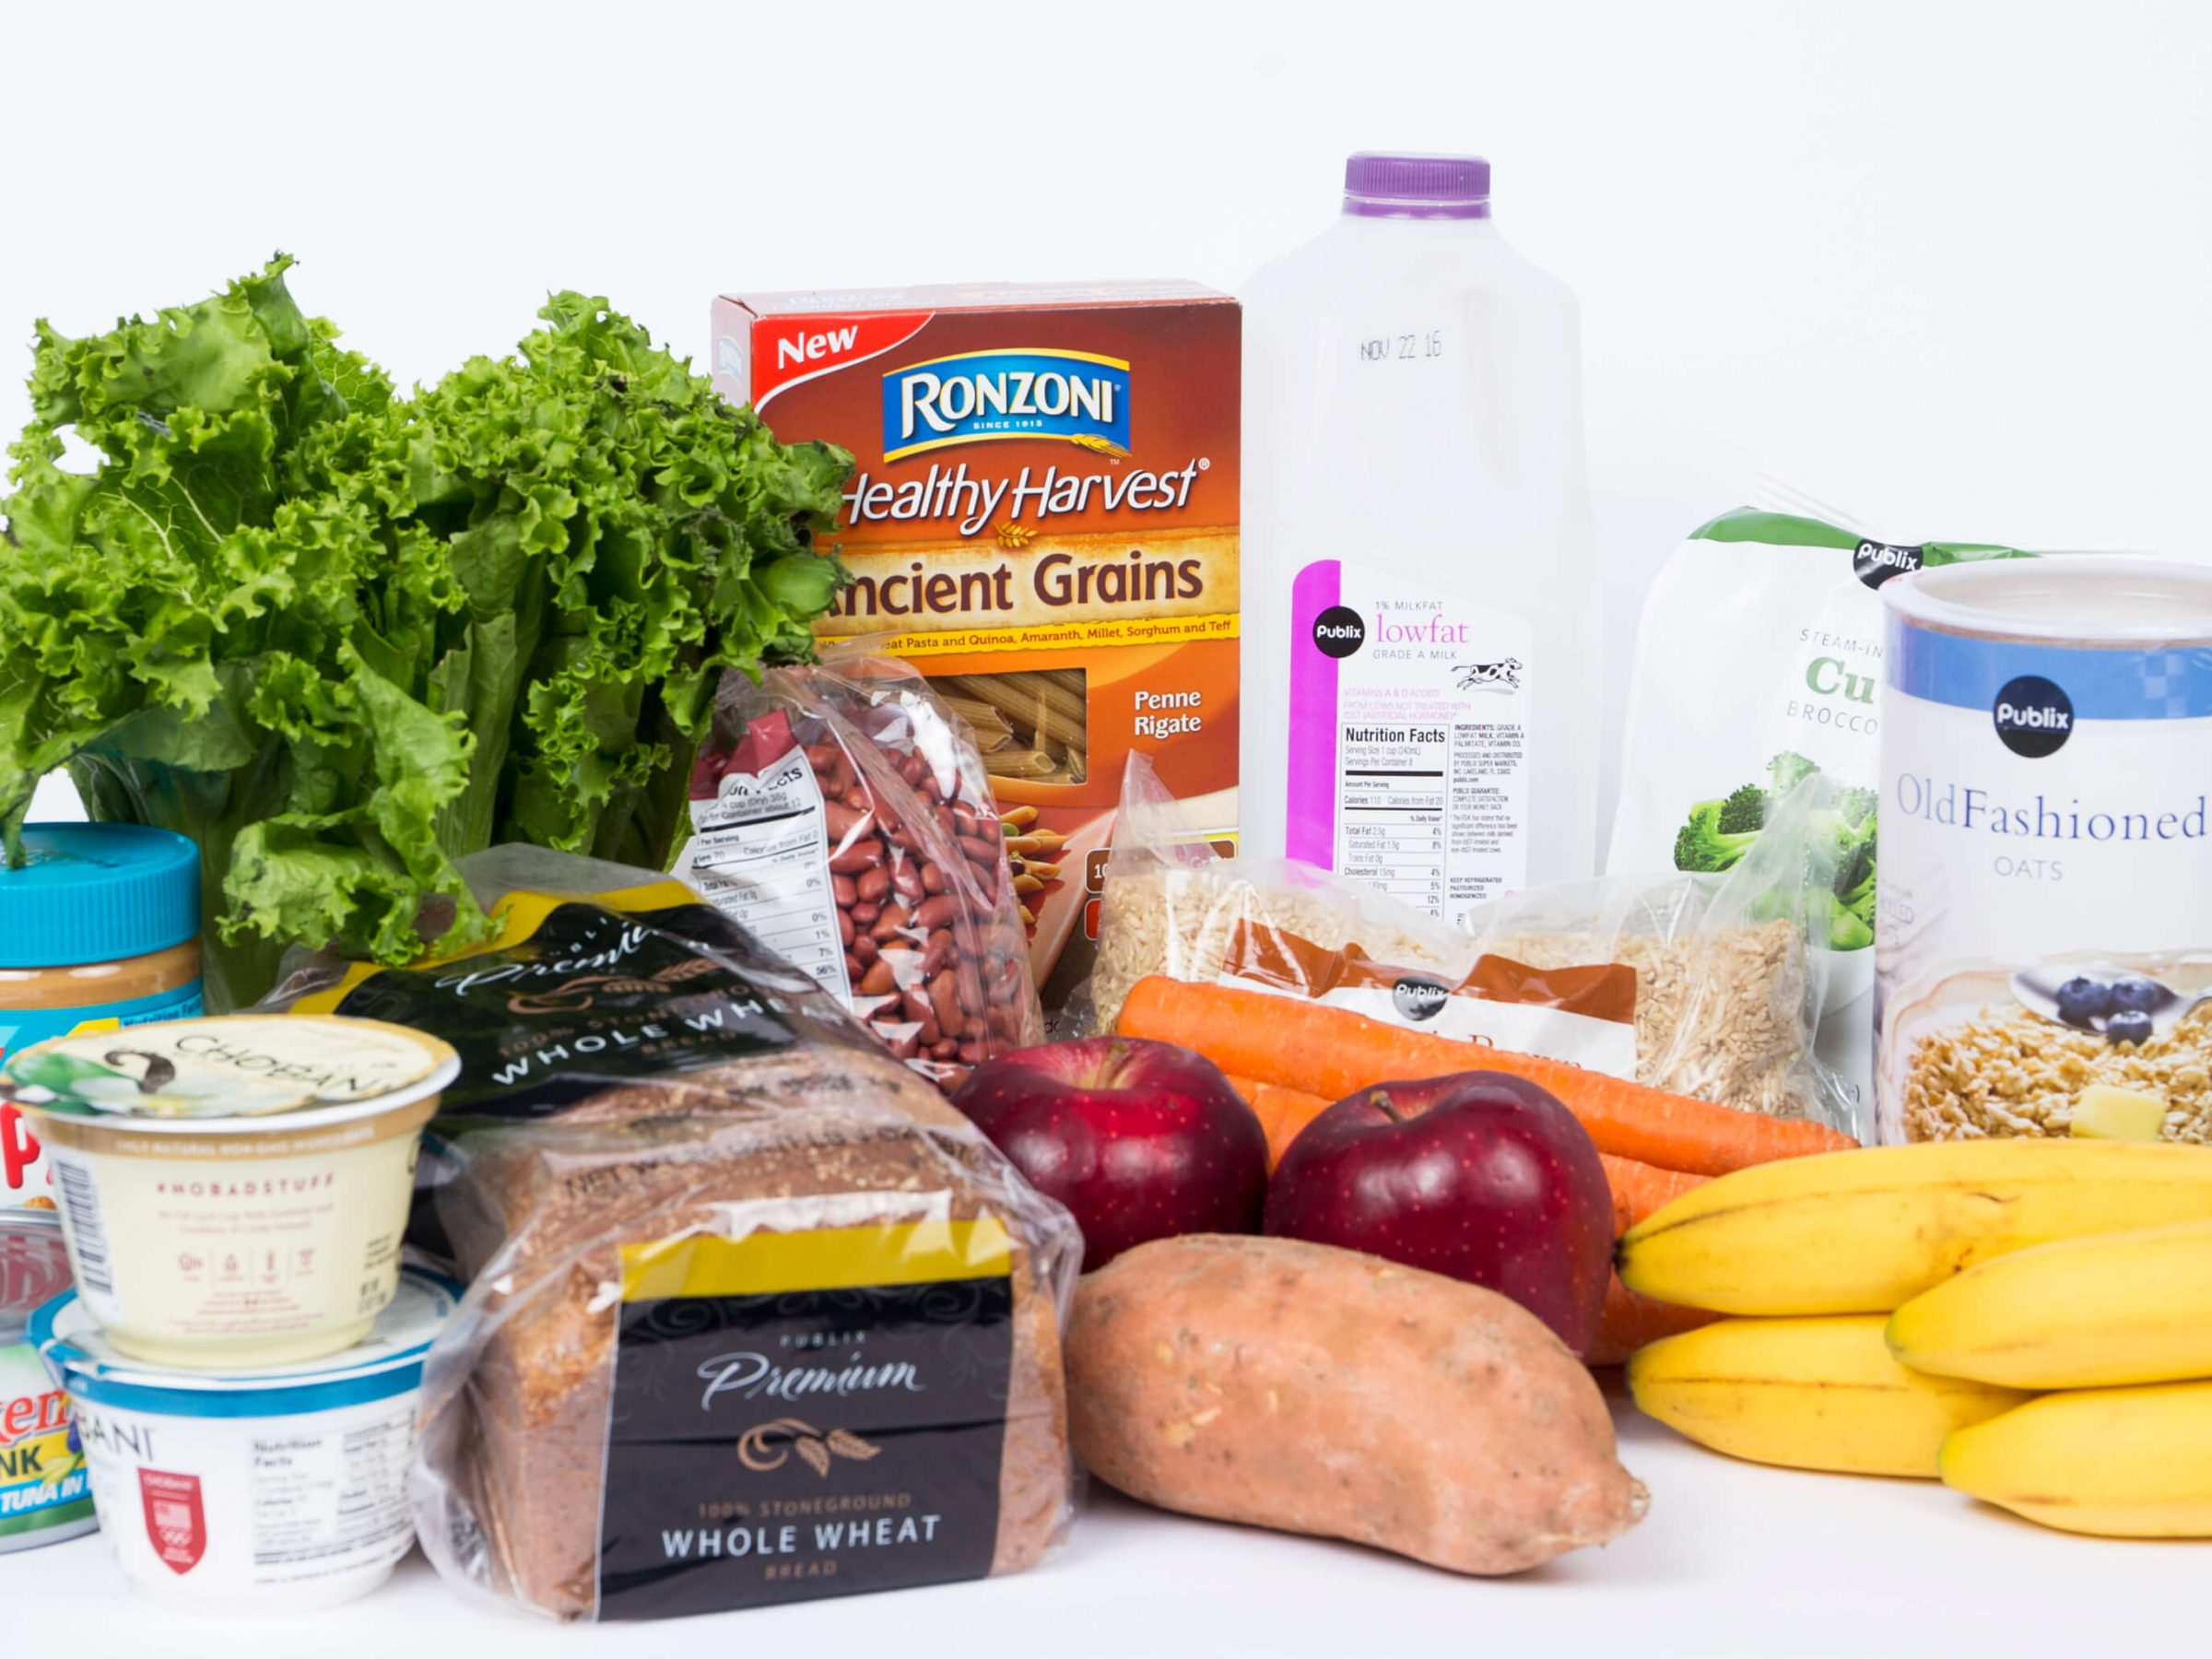 Consider these healthy options when grocery shopping